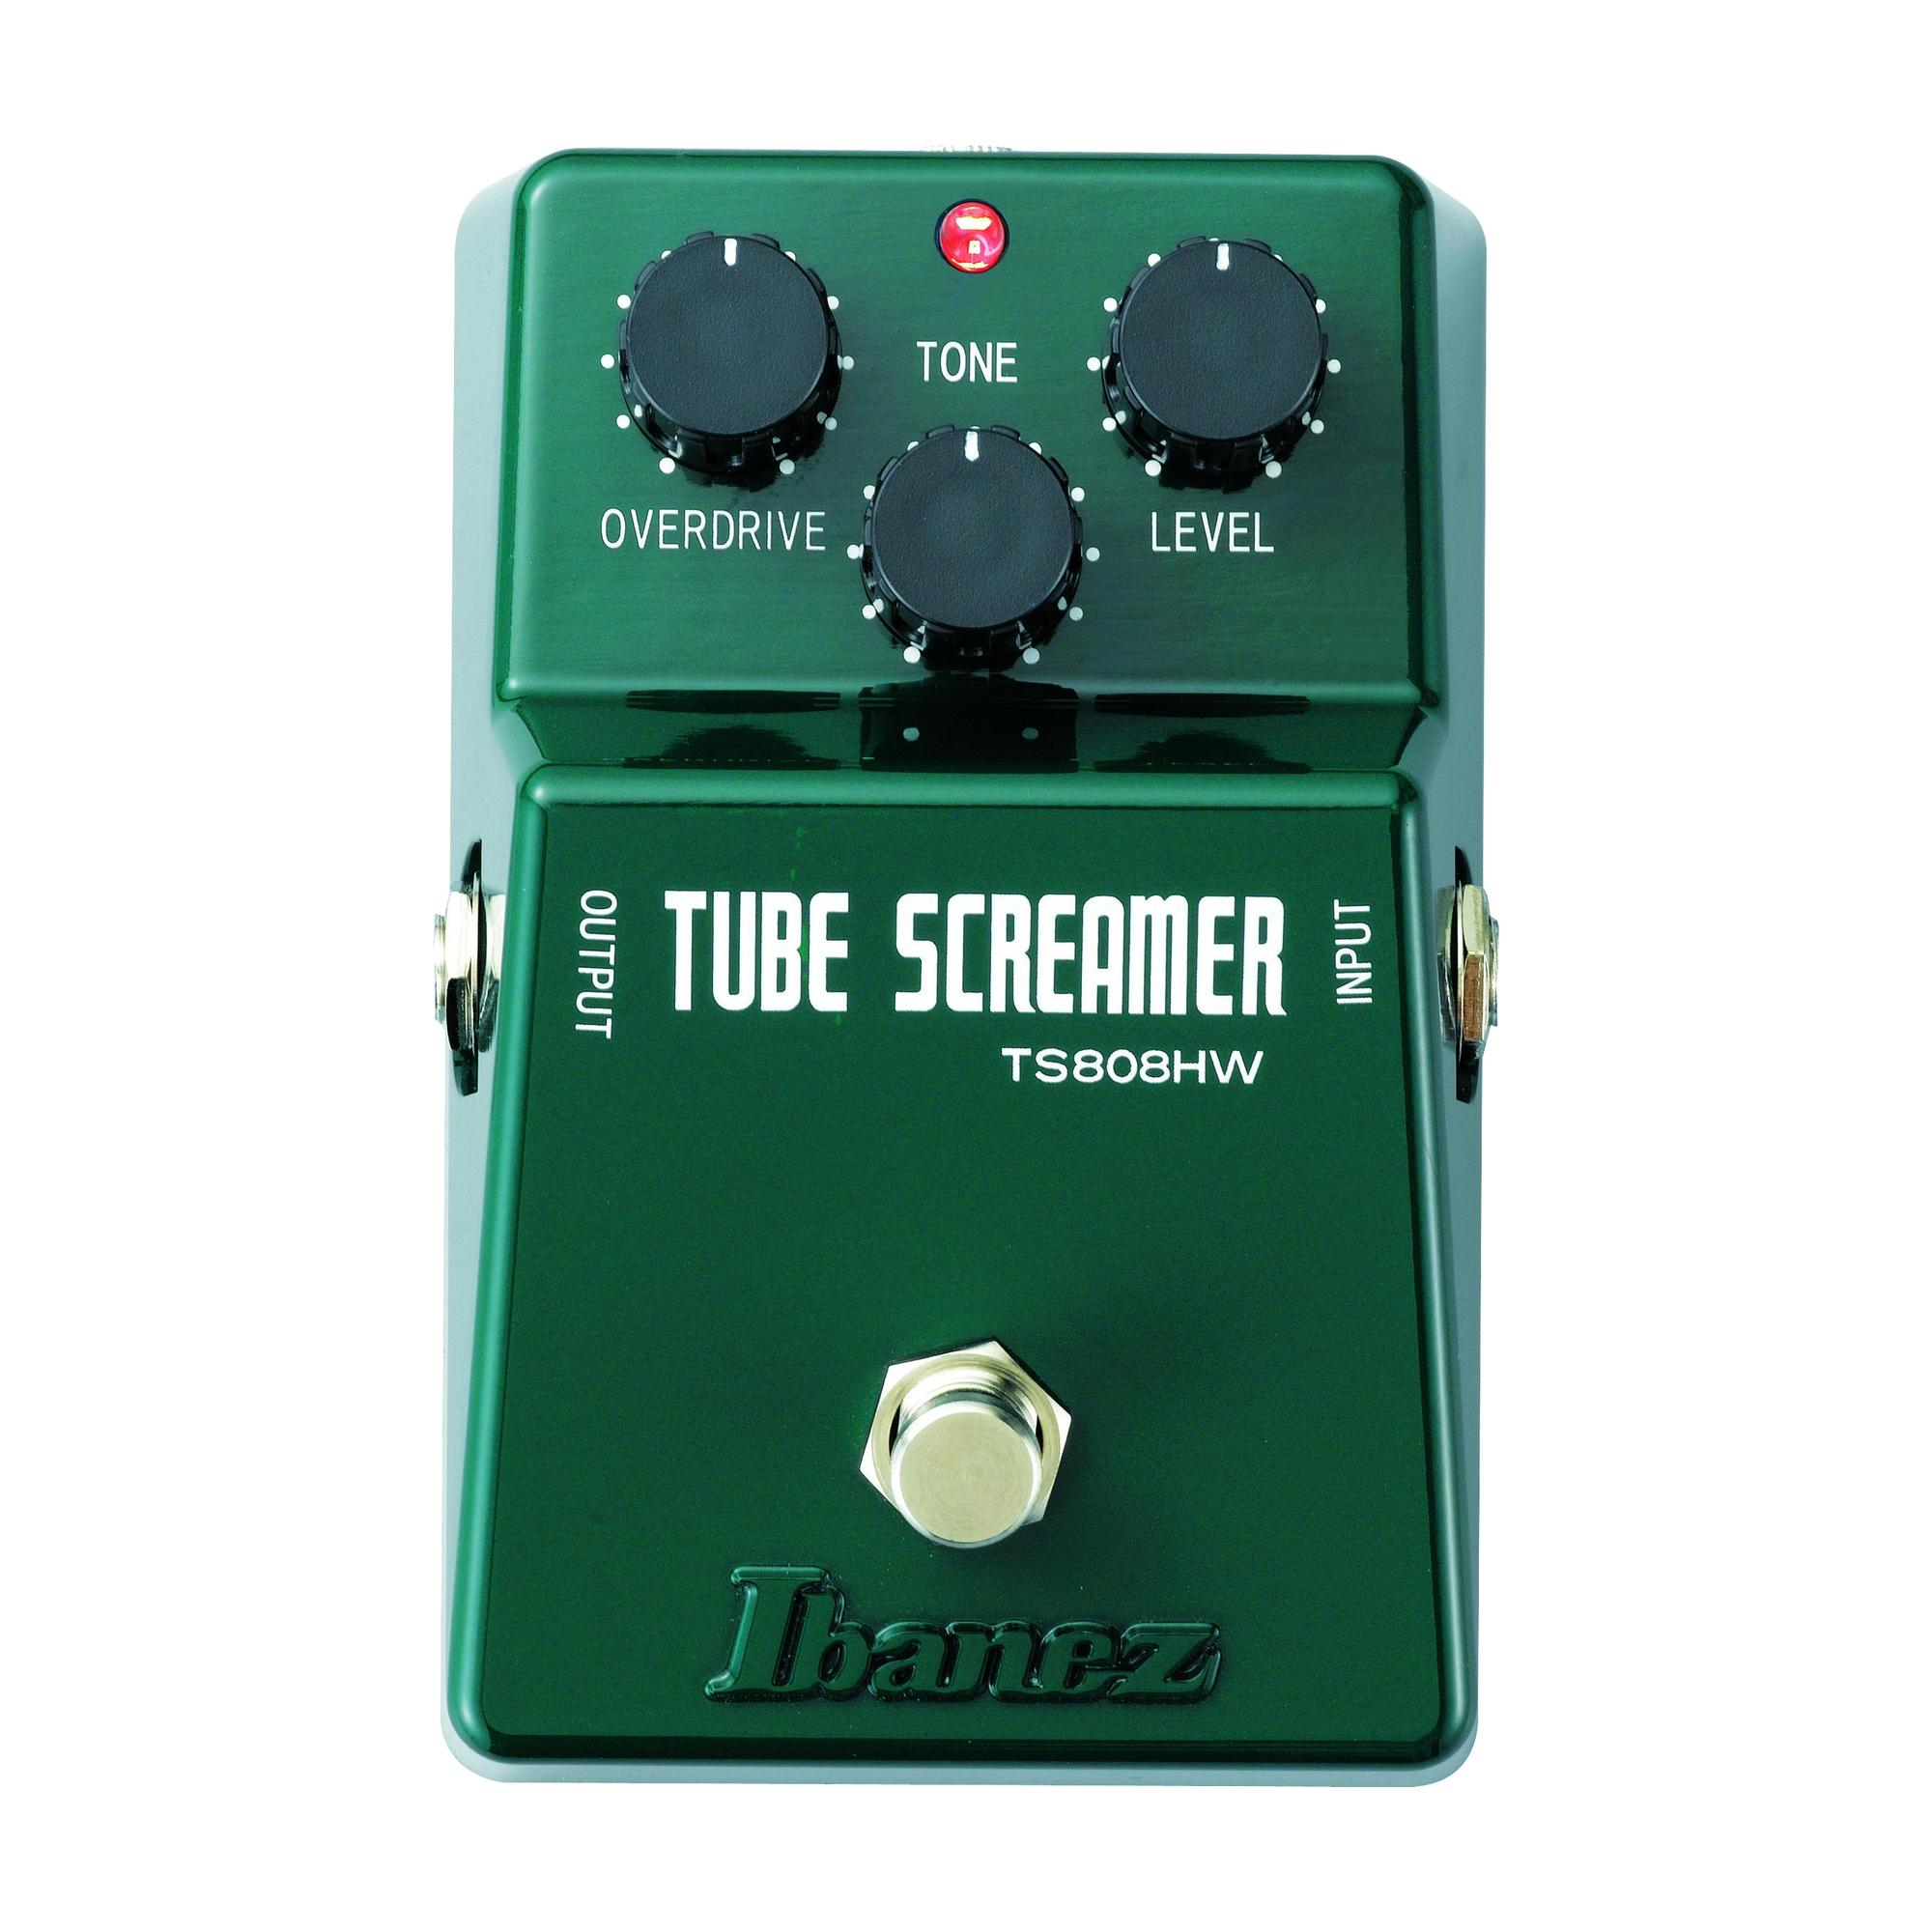 Ibanez TS808HW Hand-Wired Tube Screamer Distortion